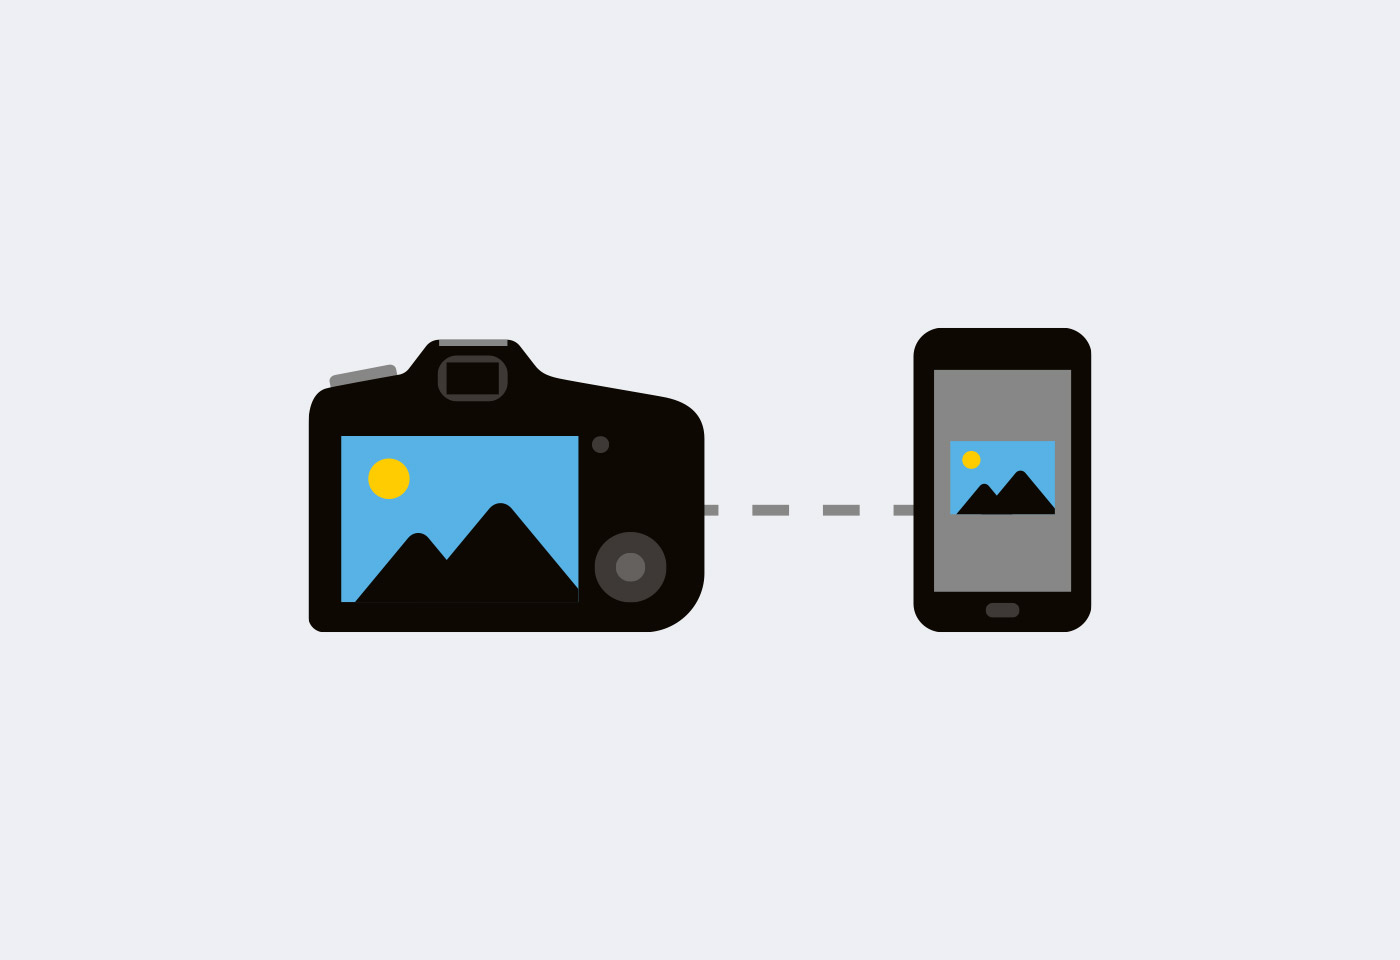 Connect your Camera to your Smartphone through WiFi | Canon